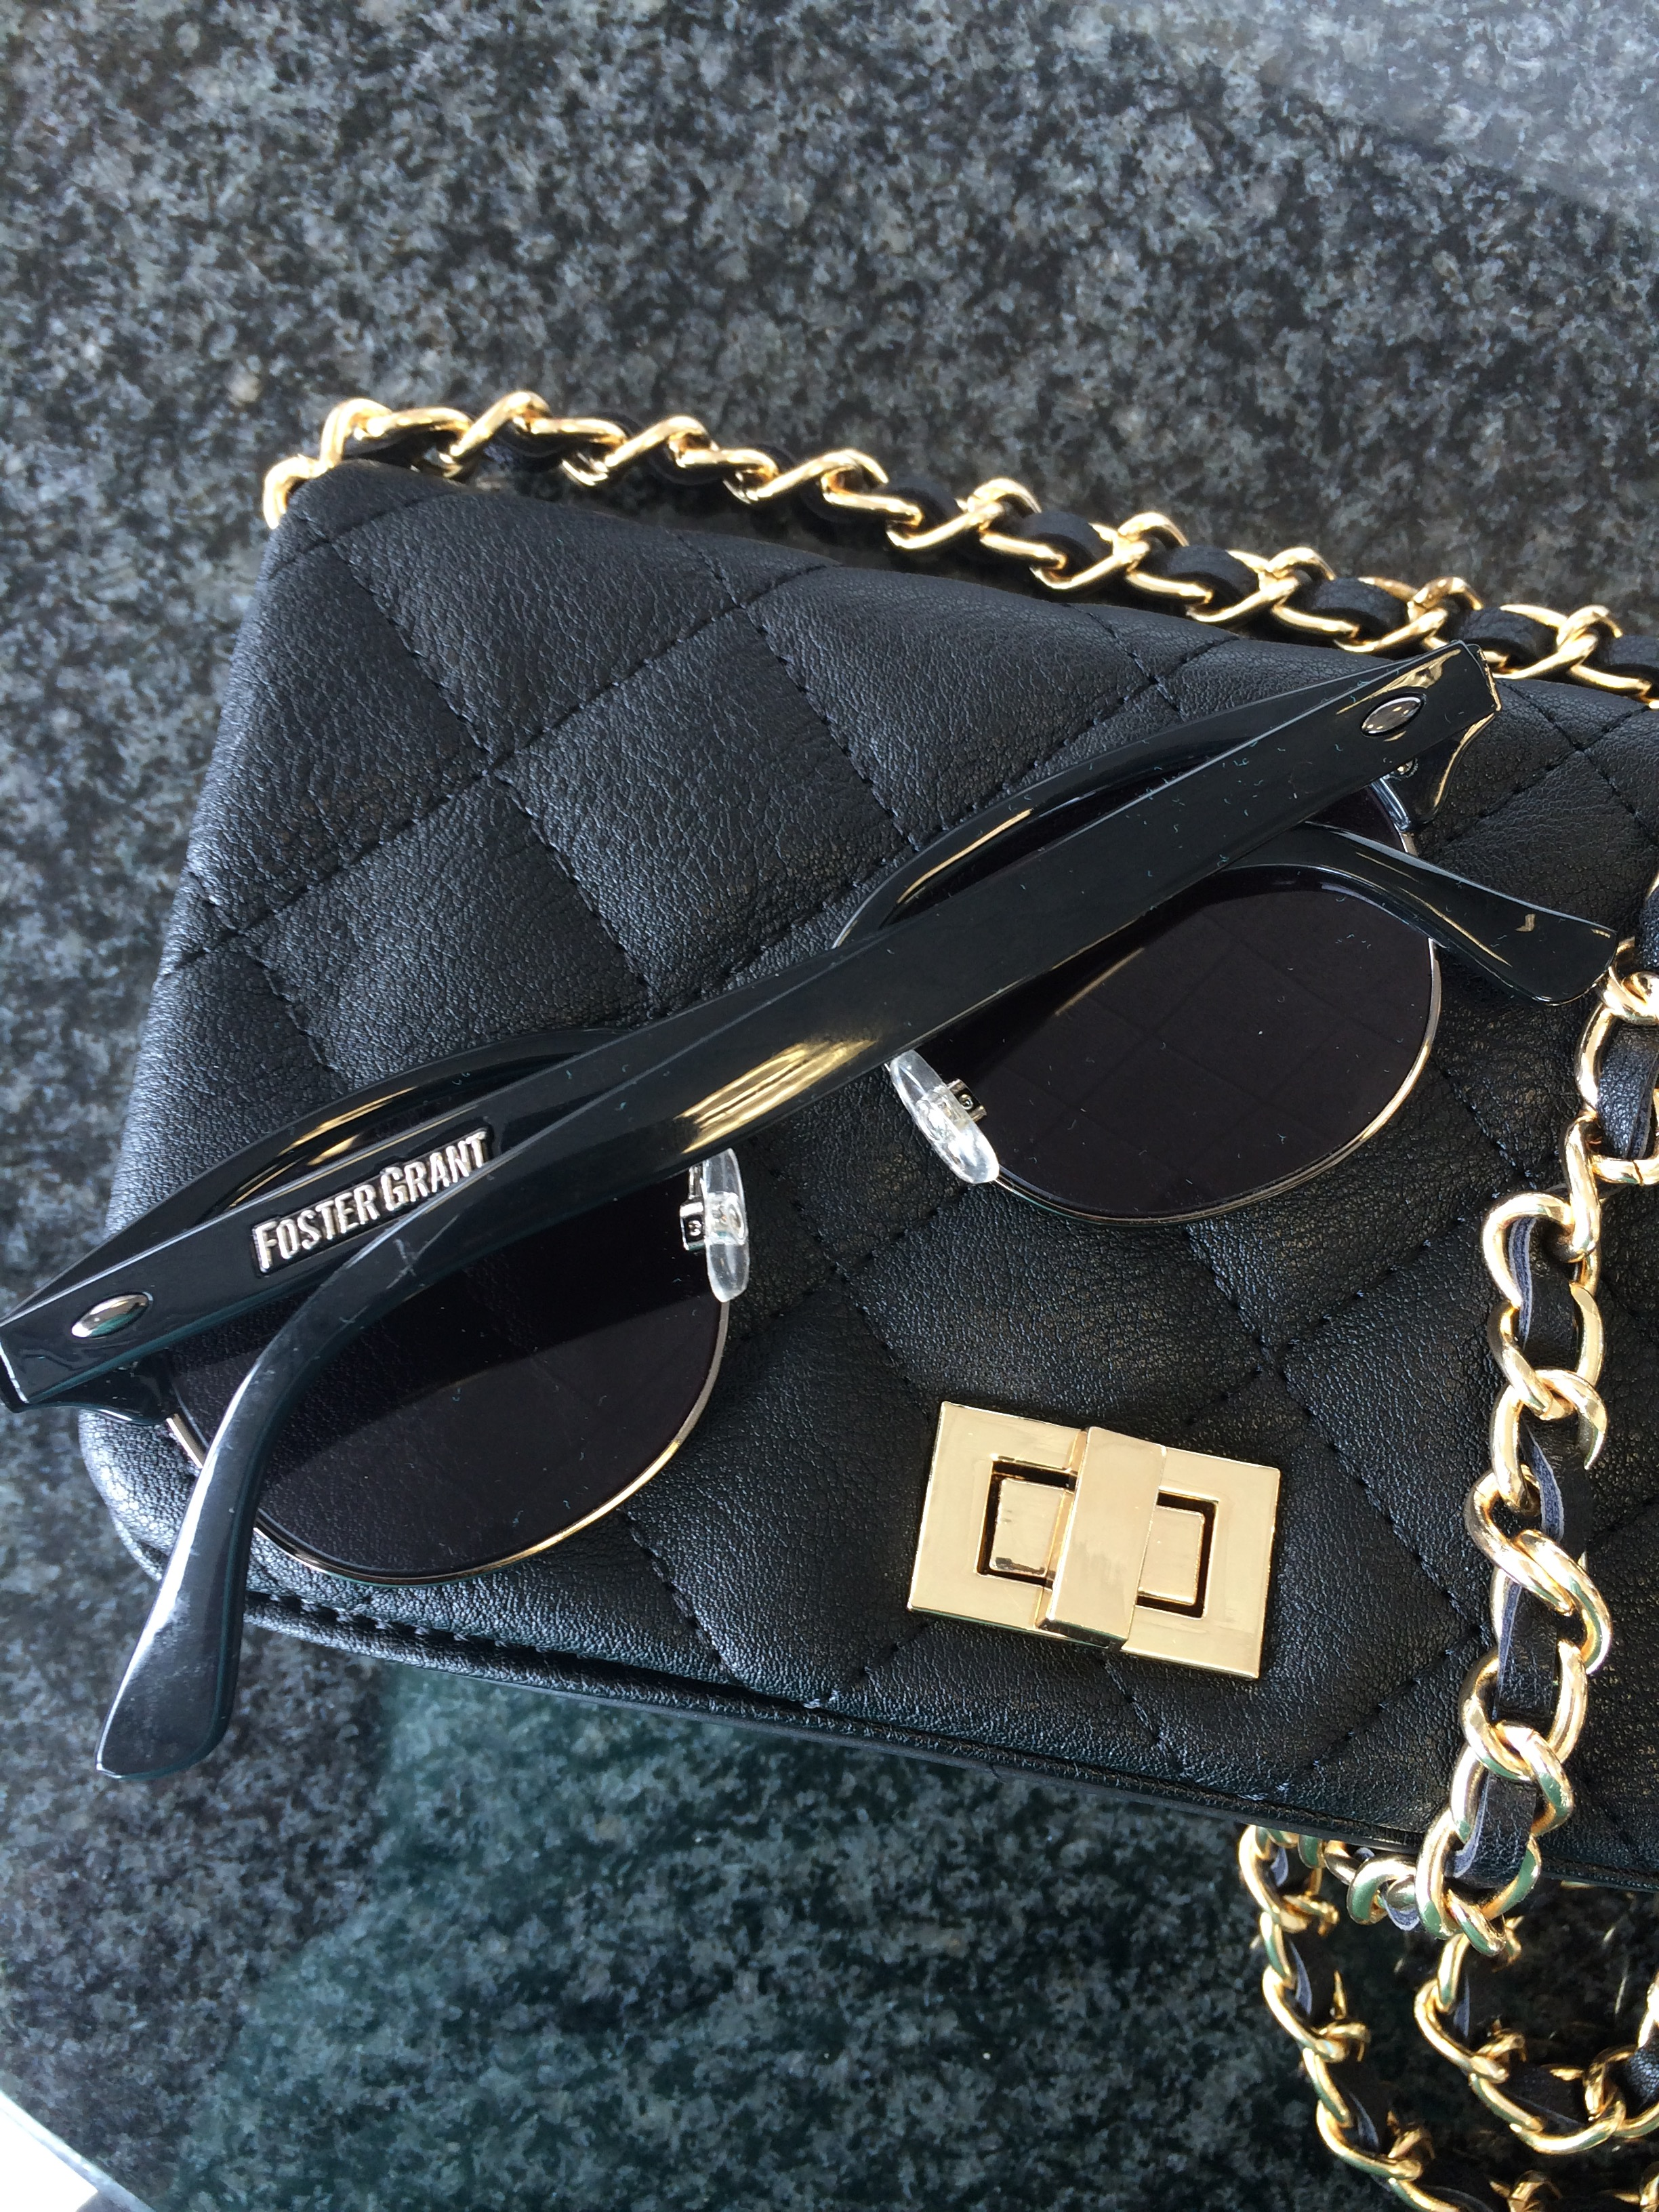 c49a19c8e46 The black quilted bag from Forever 21 along with my favorite Foster Grant  sunglasses